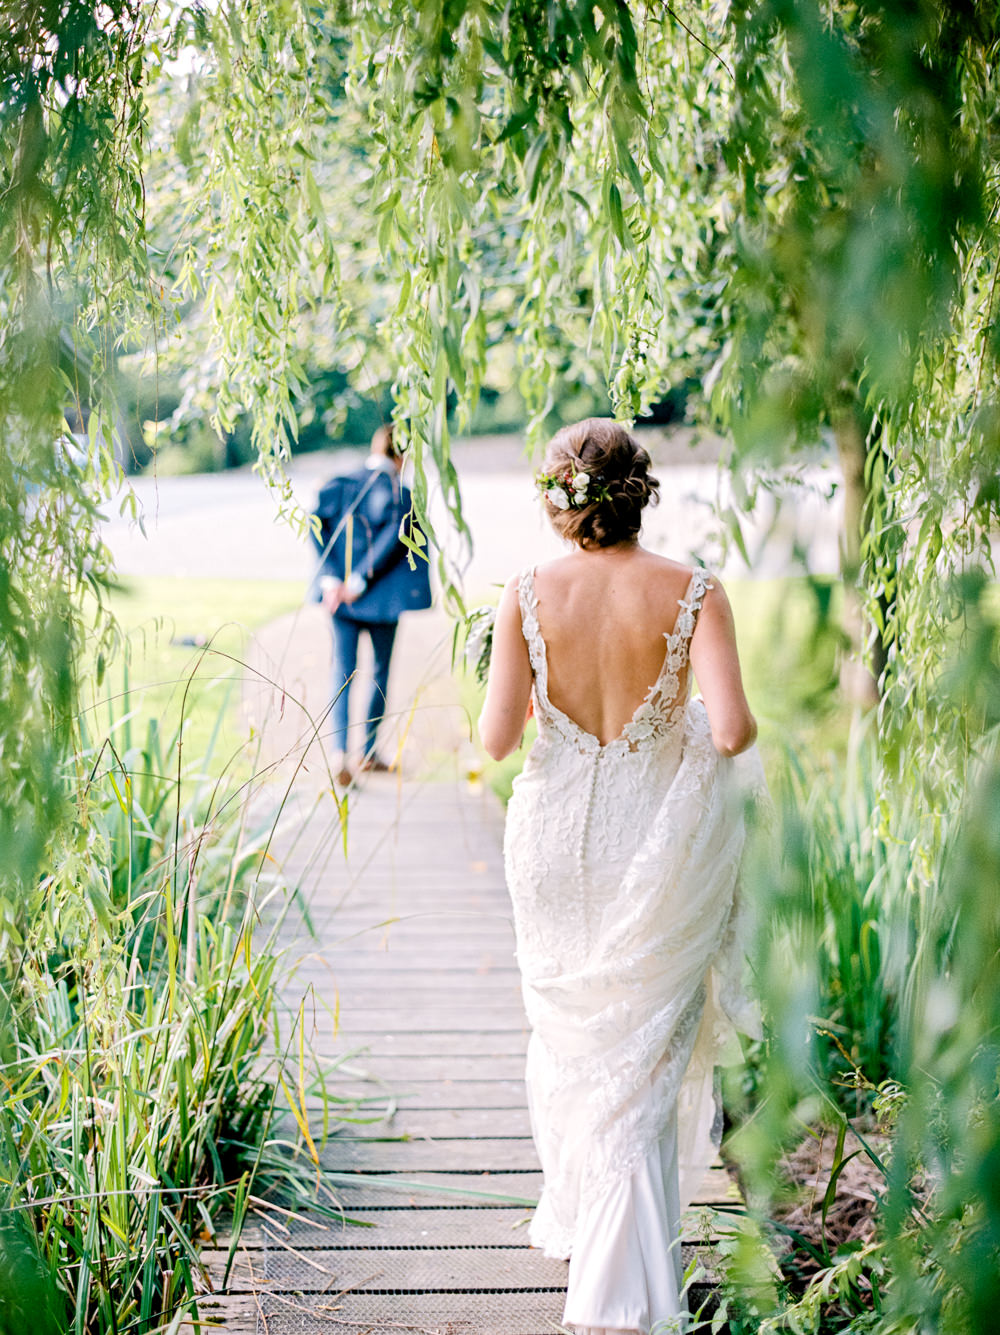 Bride Bridal Low V Neck Back Gown Dress Navy Three Piece Waistcoat Suit Groom Utopia Broughton Hall Wedding Christopher Thomas Photography